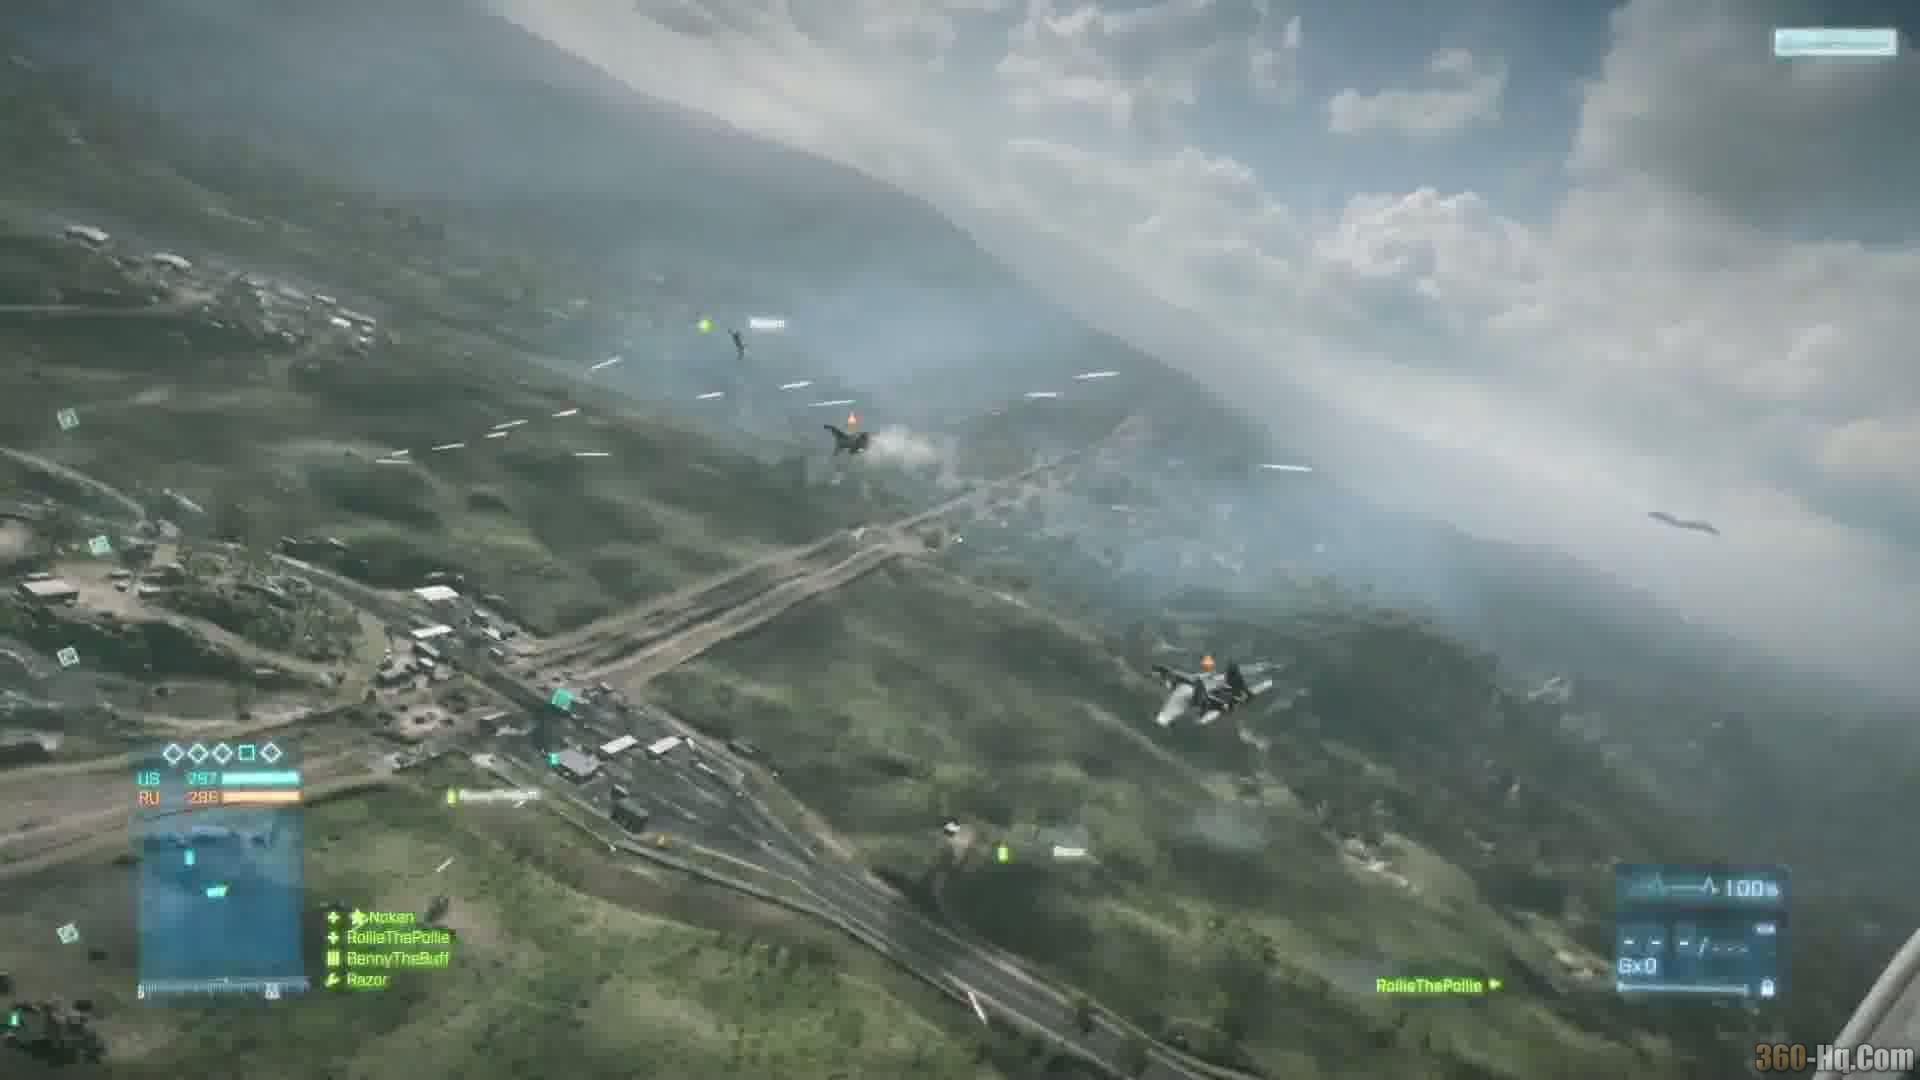 Battlefield 3 Screenshot 19216